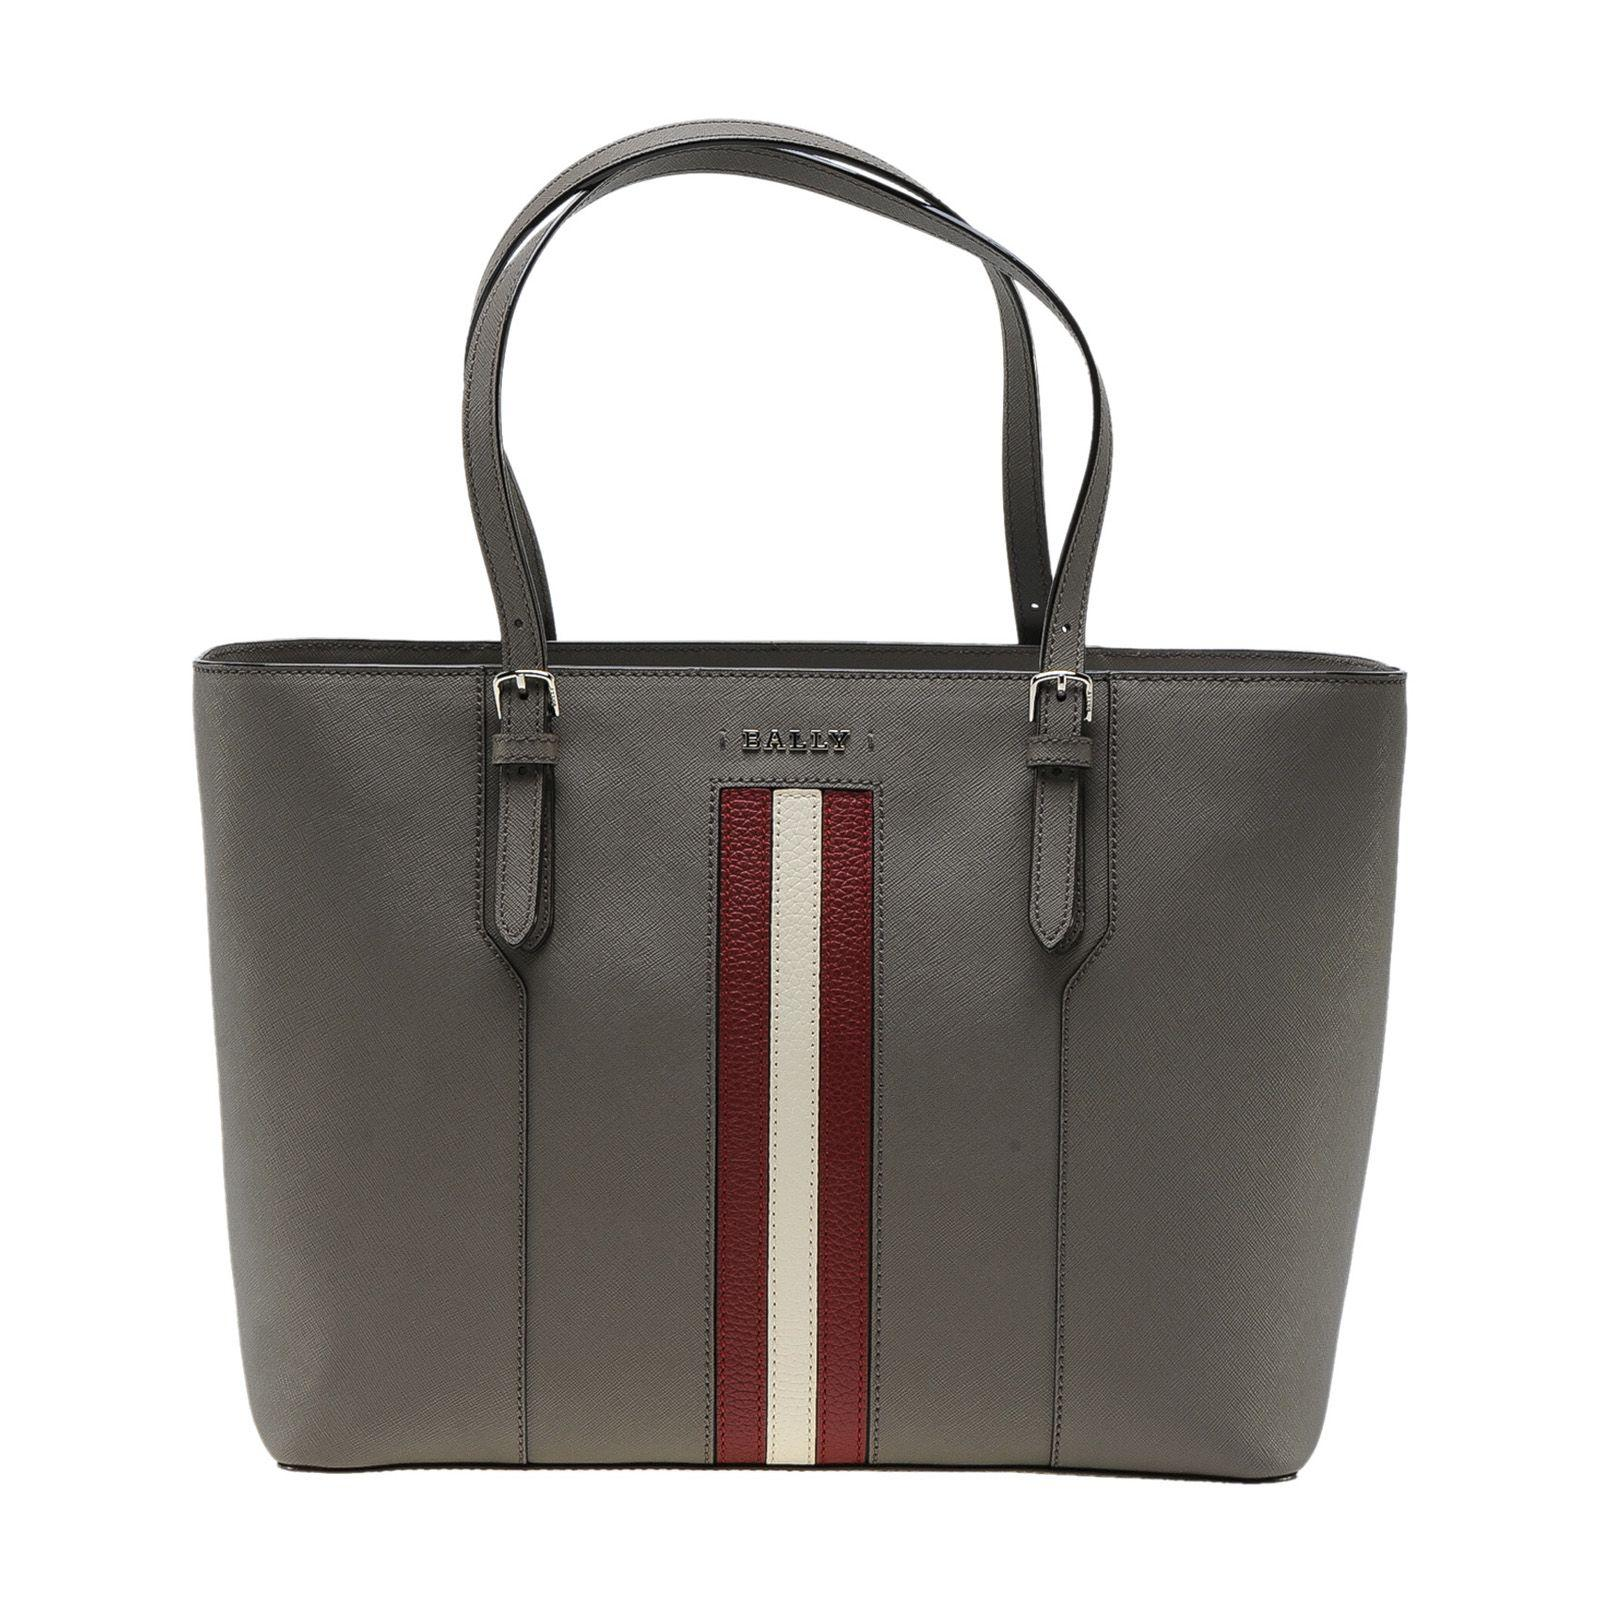 Bally Striped Trim Tote In Snuff